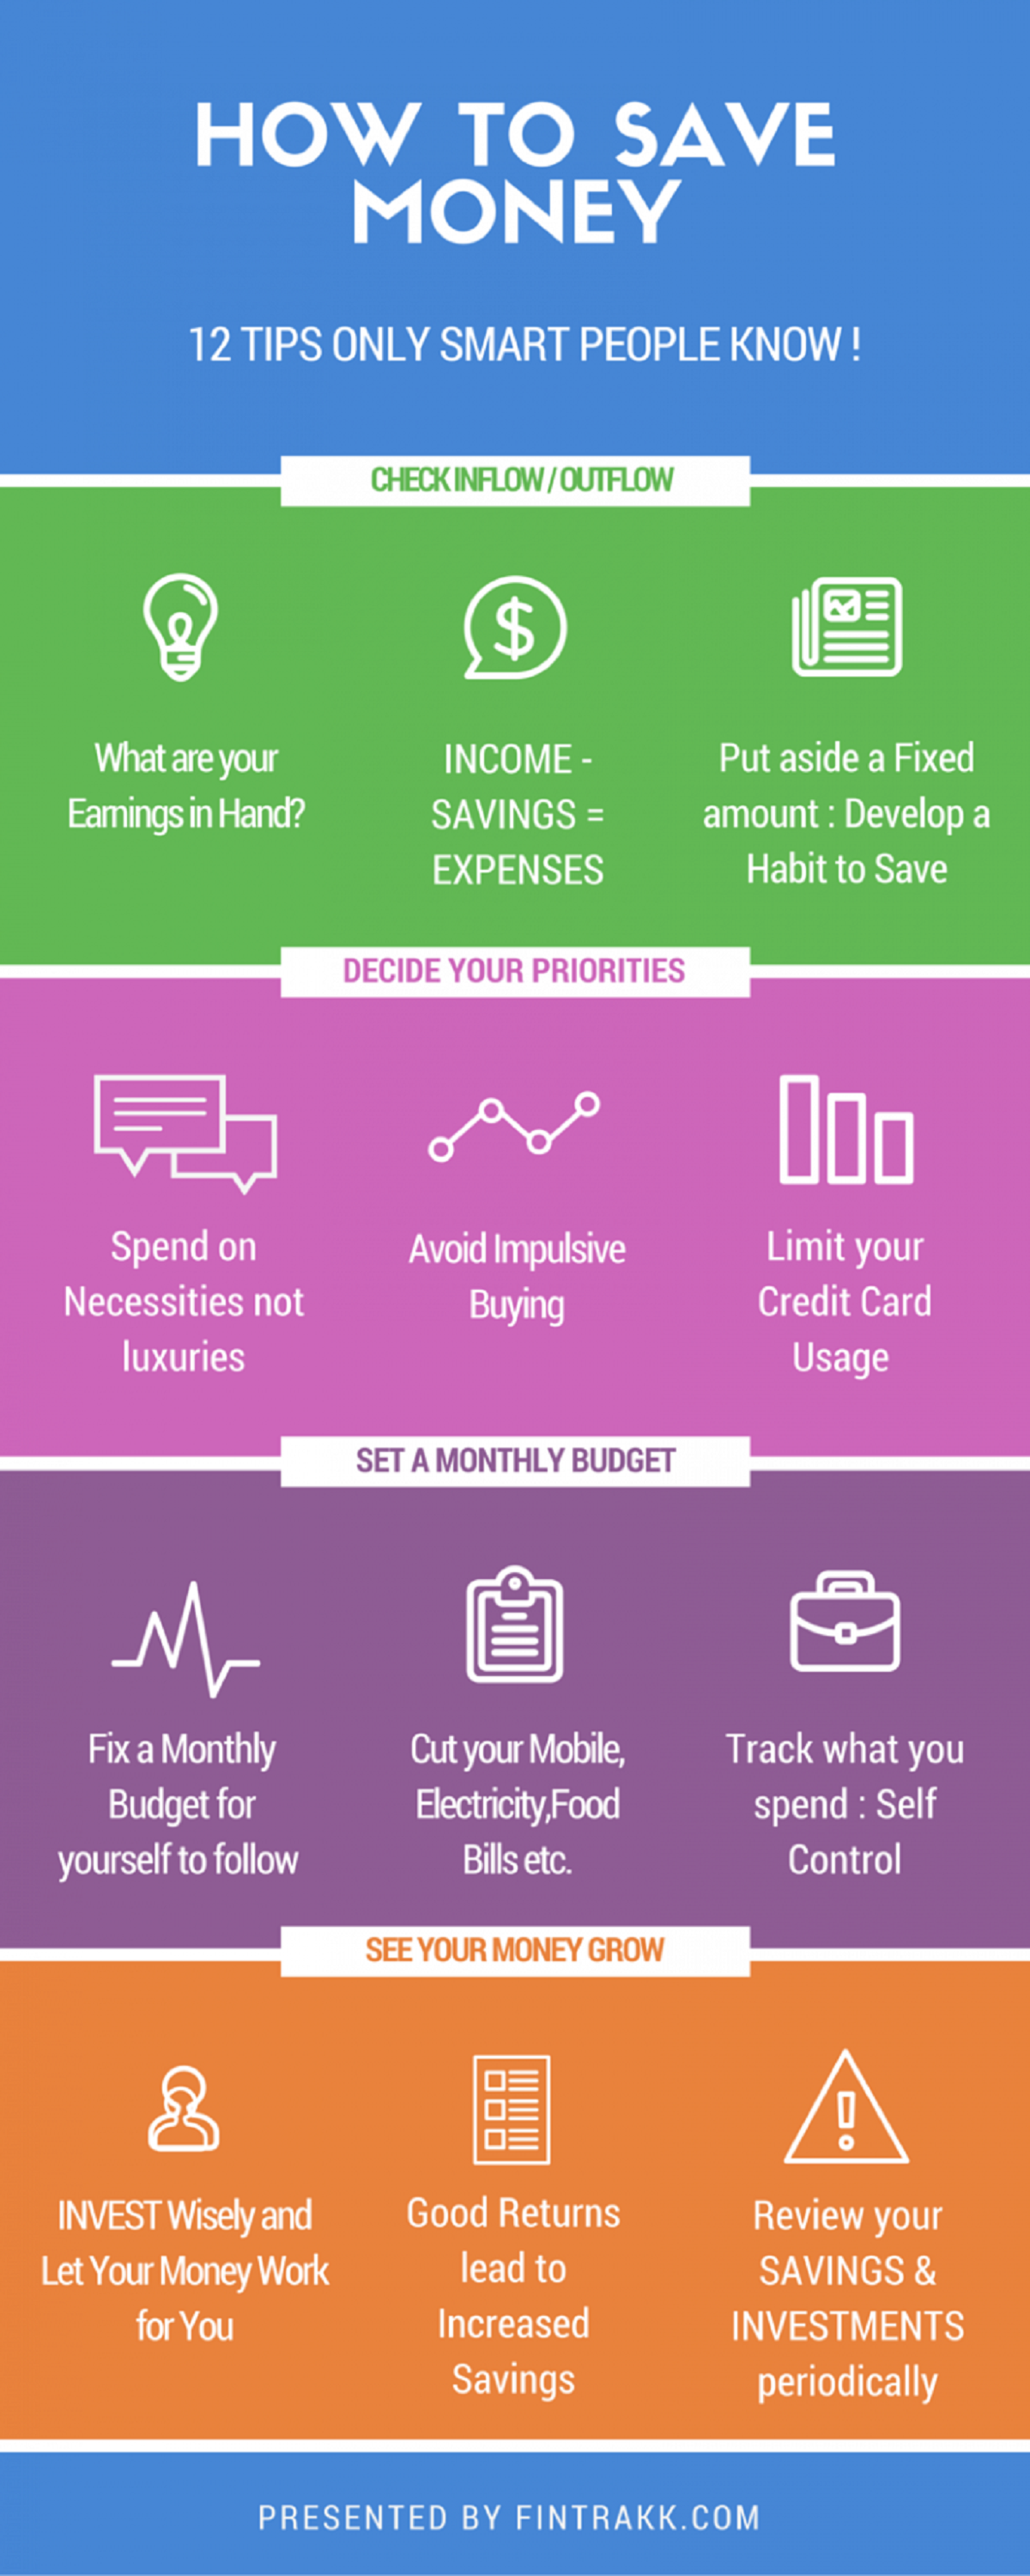 How to Save Money? 12 Tips Only Smart People Know! #infographic